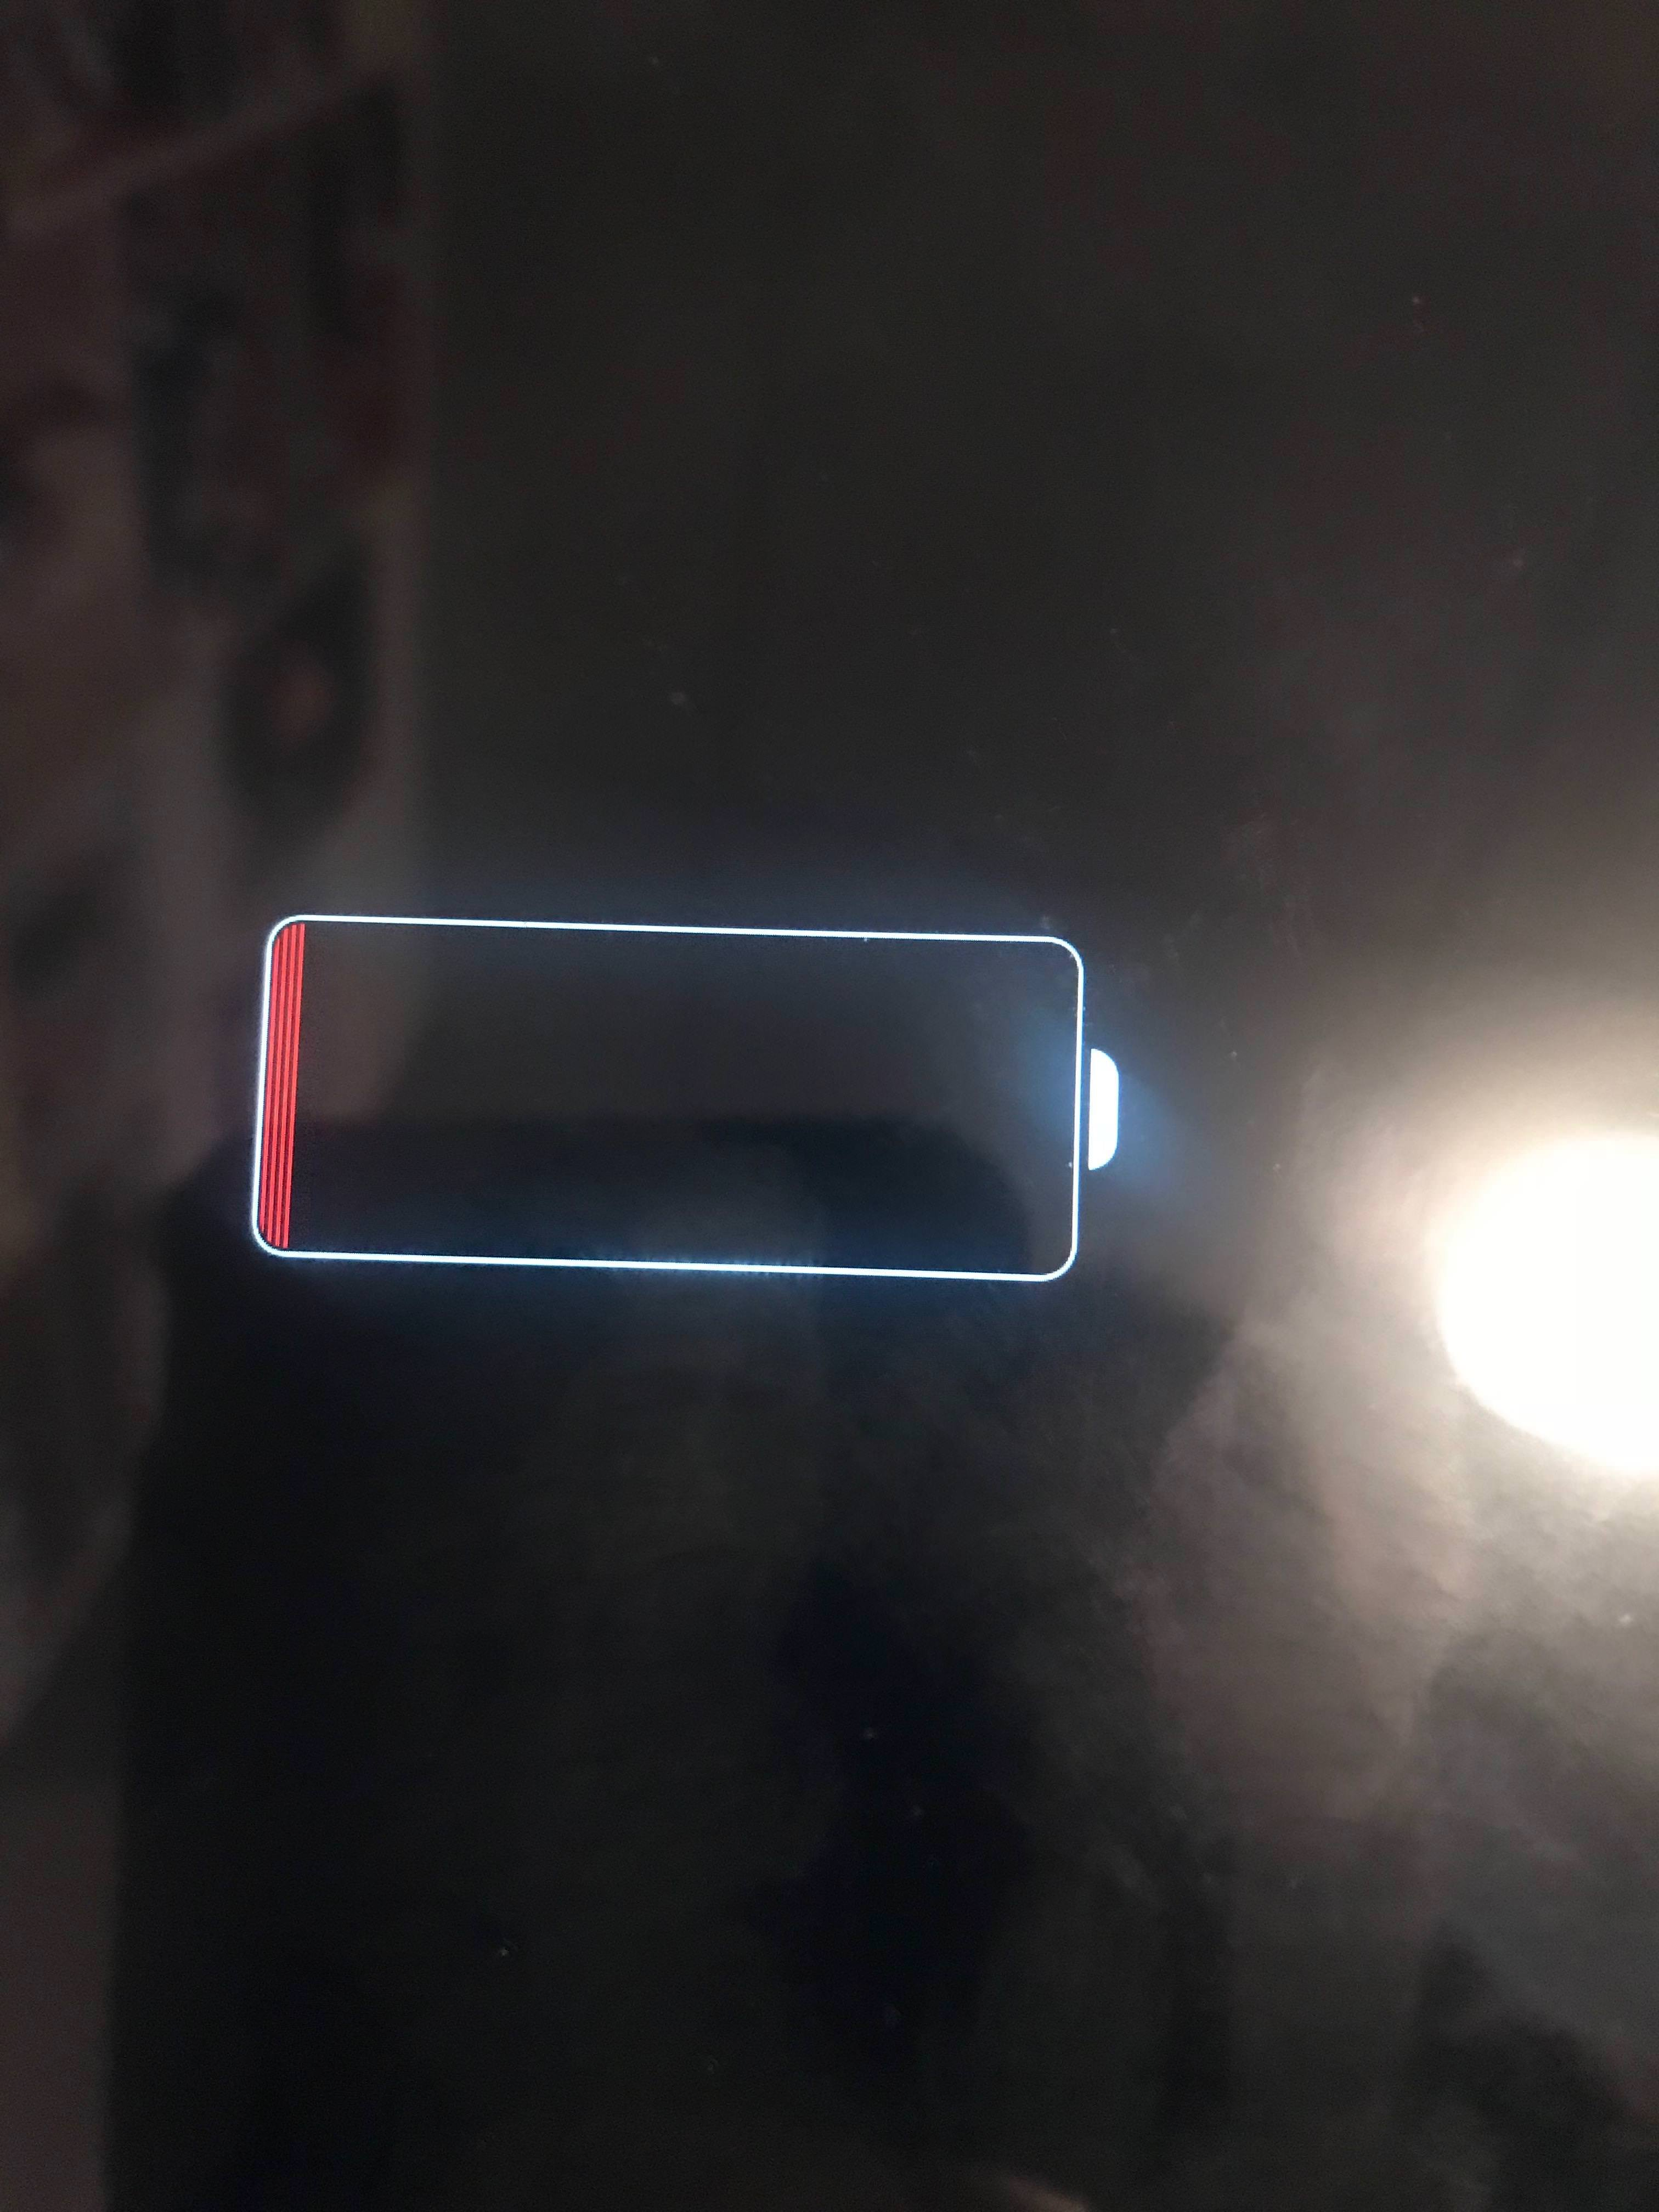 ipad air wont charge stuck on battery icon with 4 red lines. ipad-air-wont-charge-stuck-on-battery-icon-with-4-red-lines